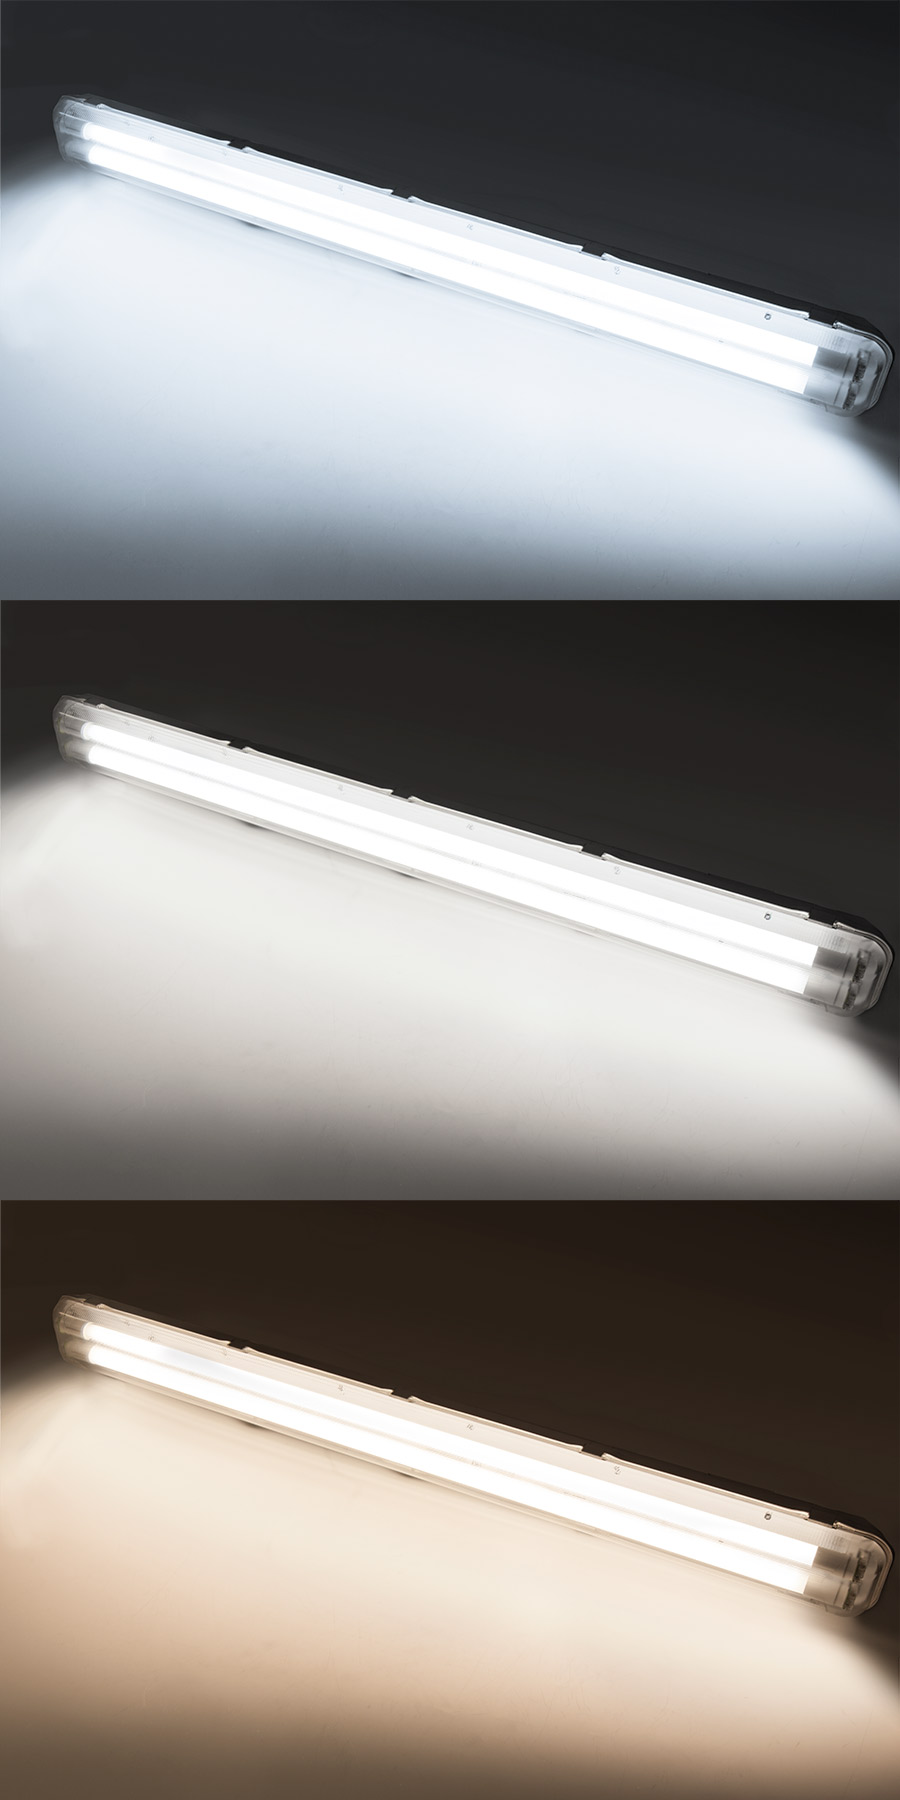 T8 vapor tight led light fixture for 2 led t8 tubes industrial led t8 led vapor proof light fixture for 2 led t8 tubes industrial led light 4 long shown on in cool white top natural white center and warm white arubaitofo Image collections